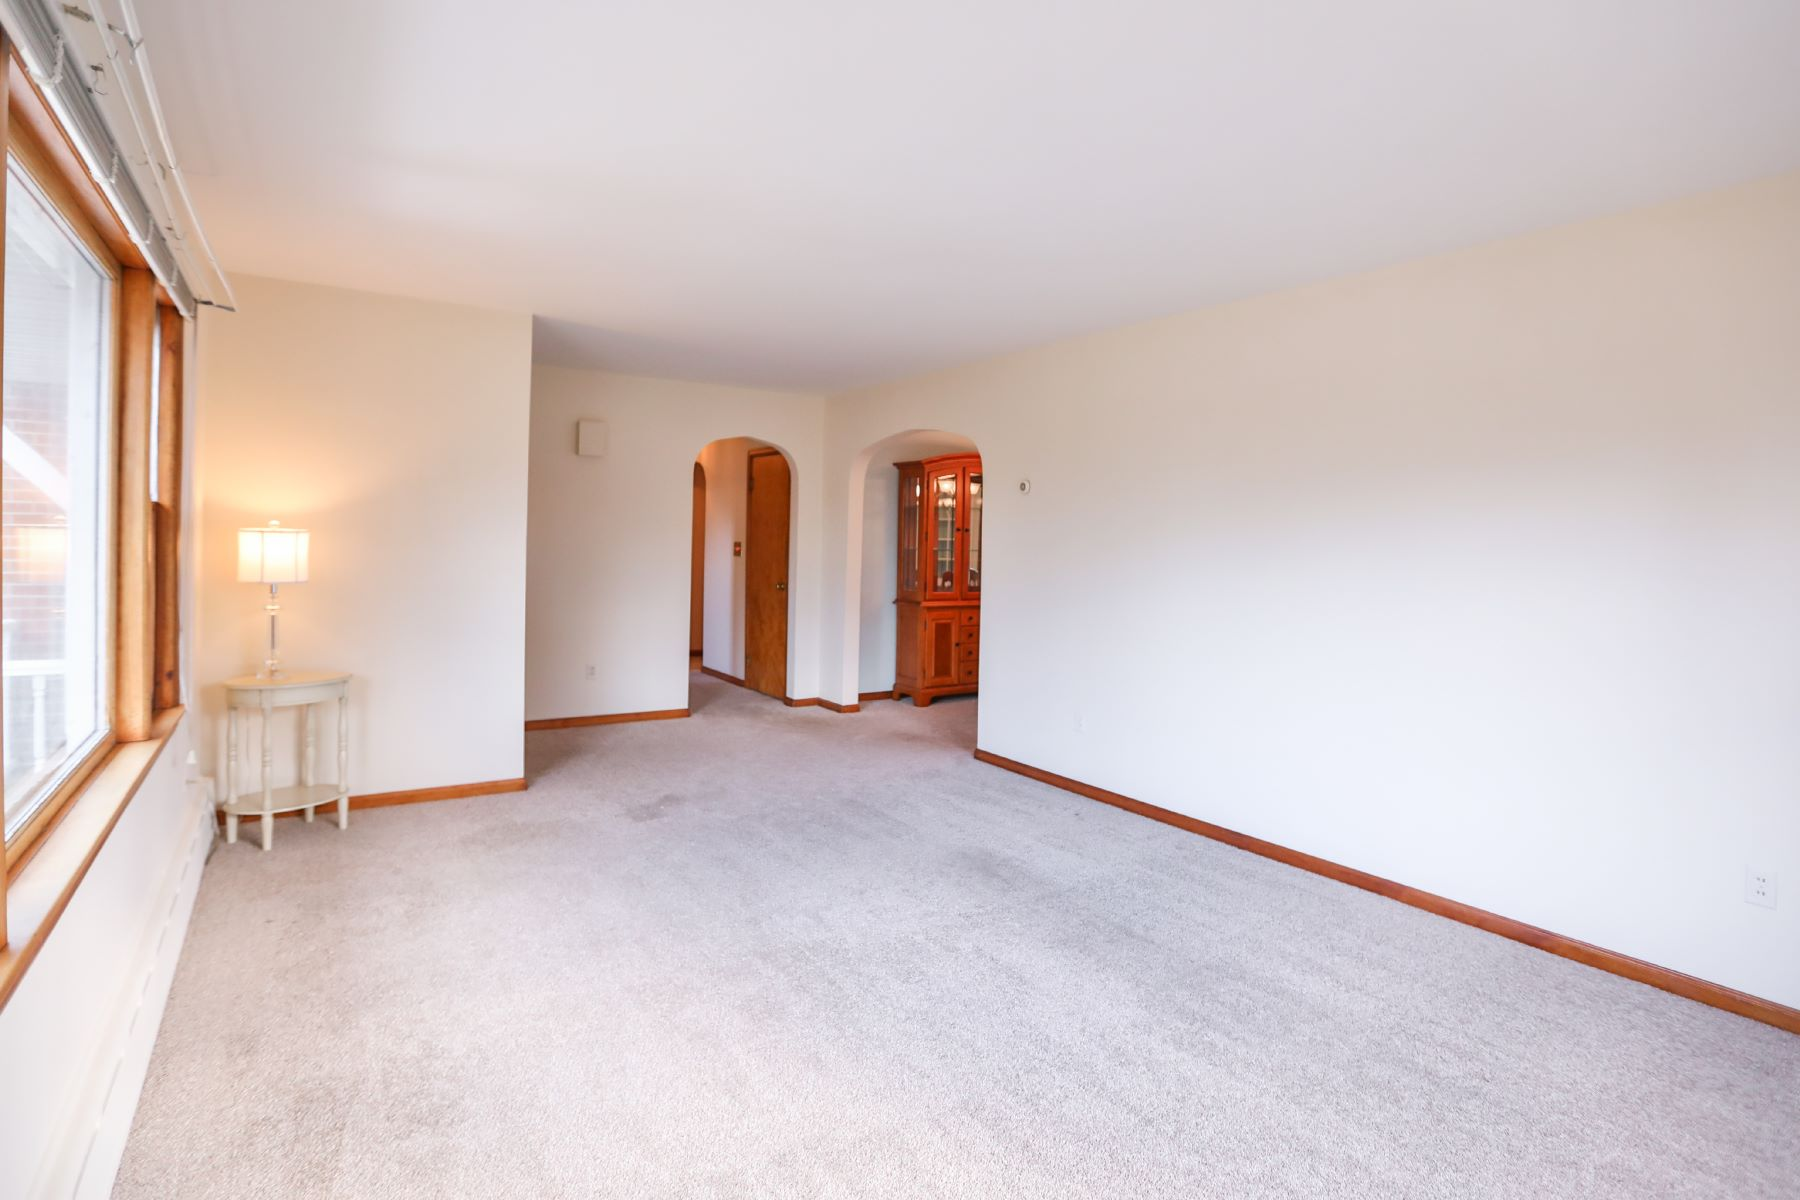 Single Family Homes for Sale at Vintage Cape 4 Sitzmark La Rensselaer, New York 12144 United States